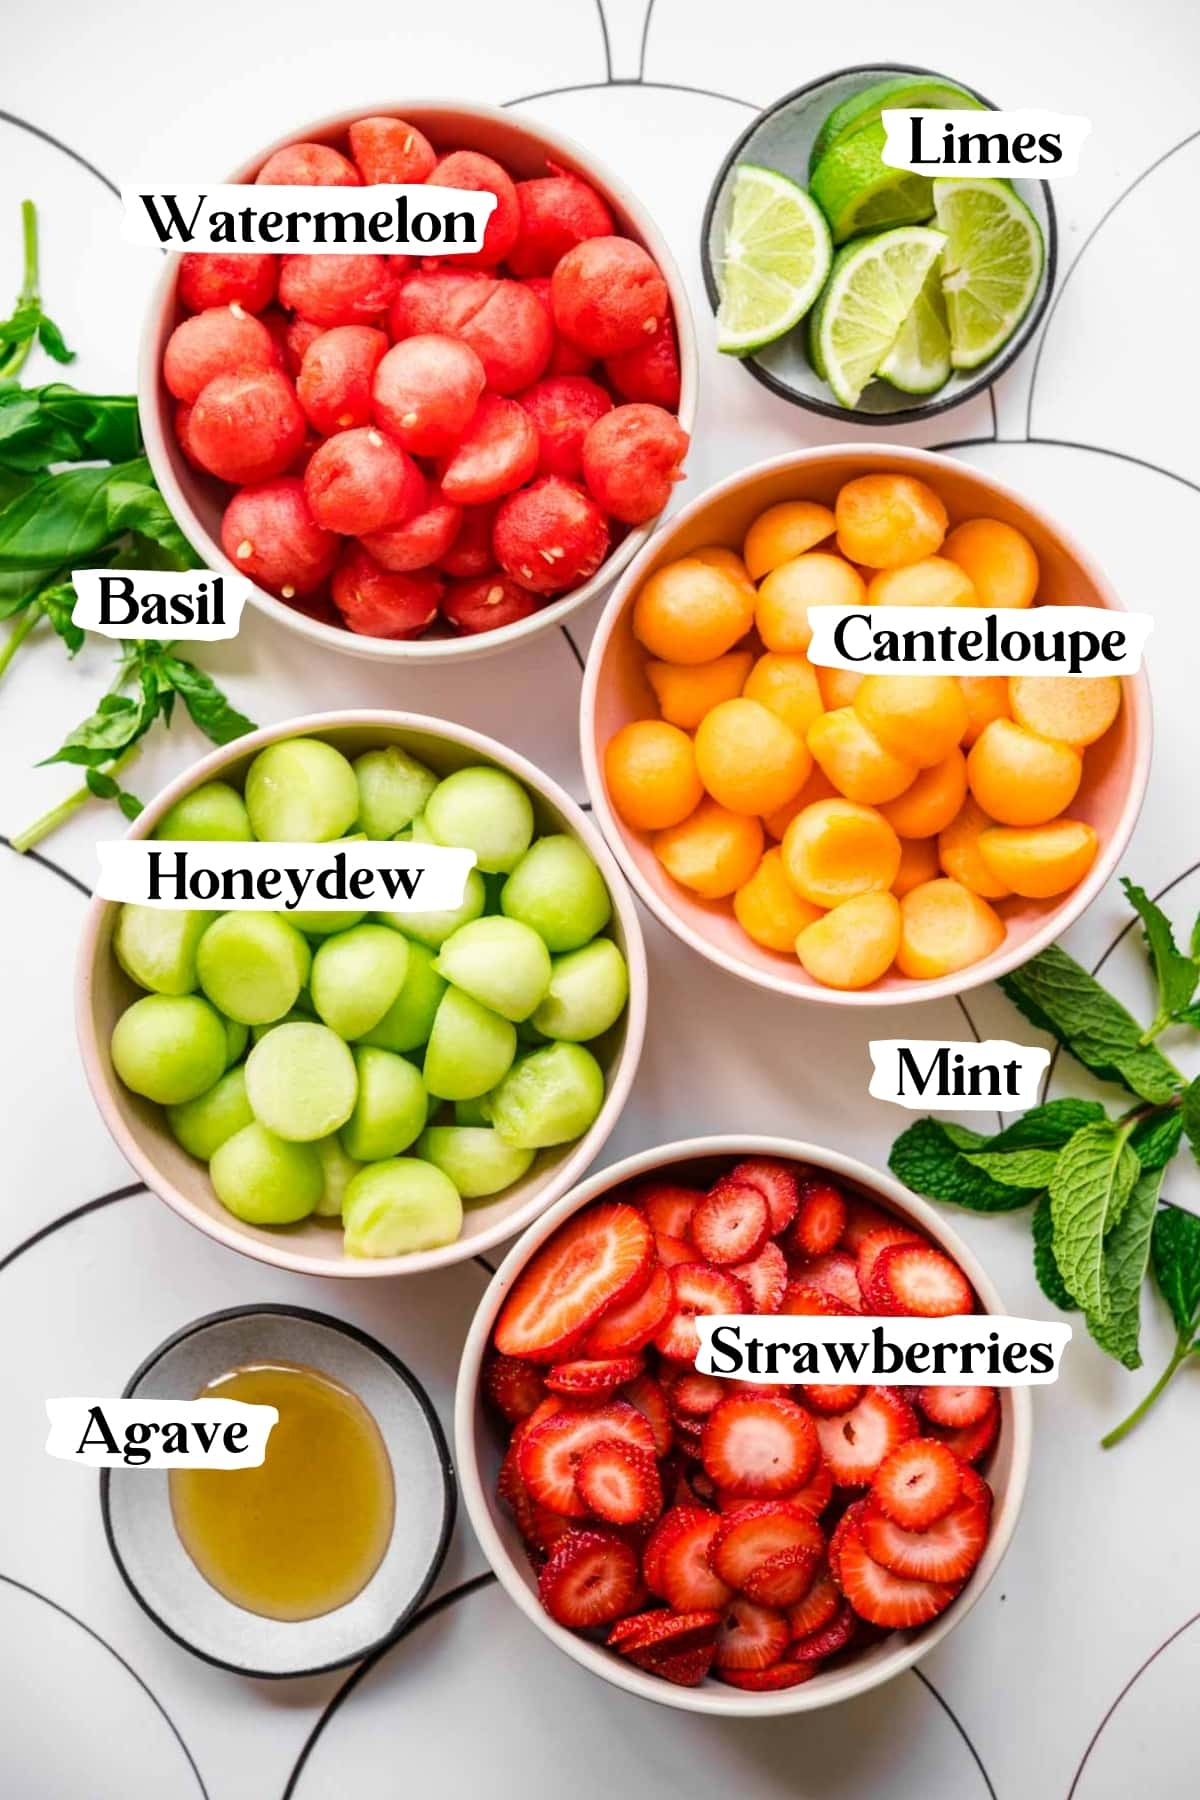 overhead view of ingredients for melon ball salad in bowls.